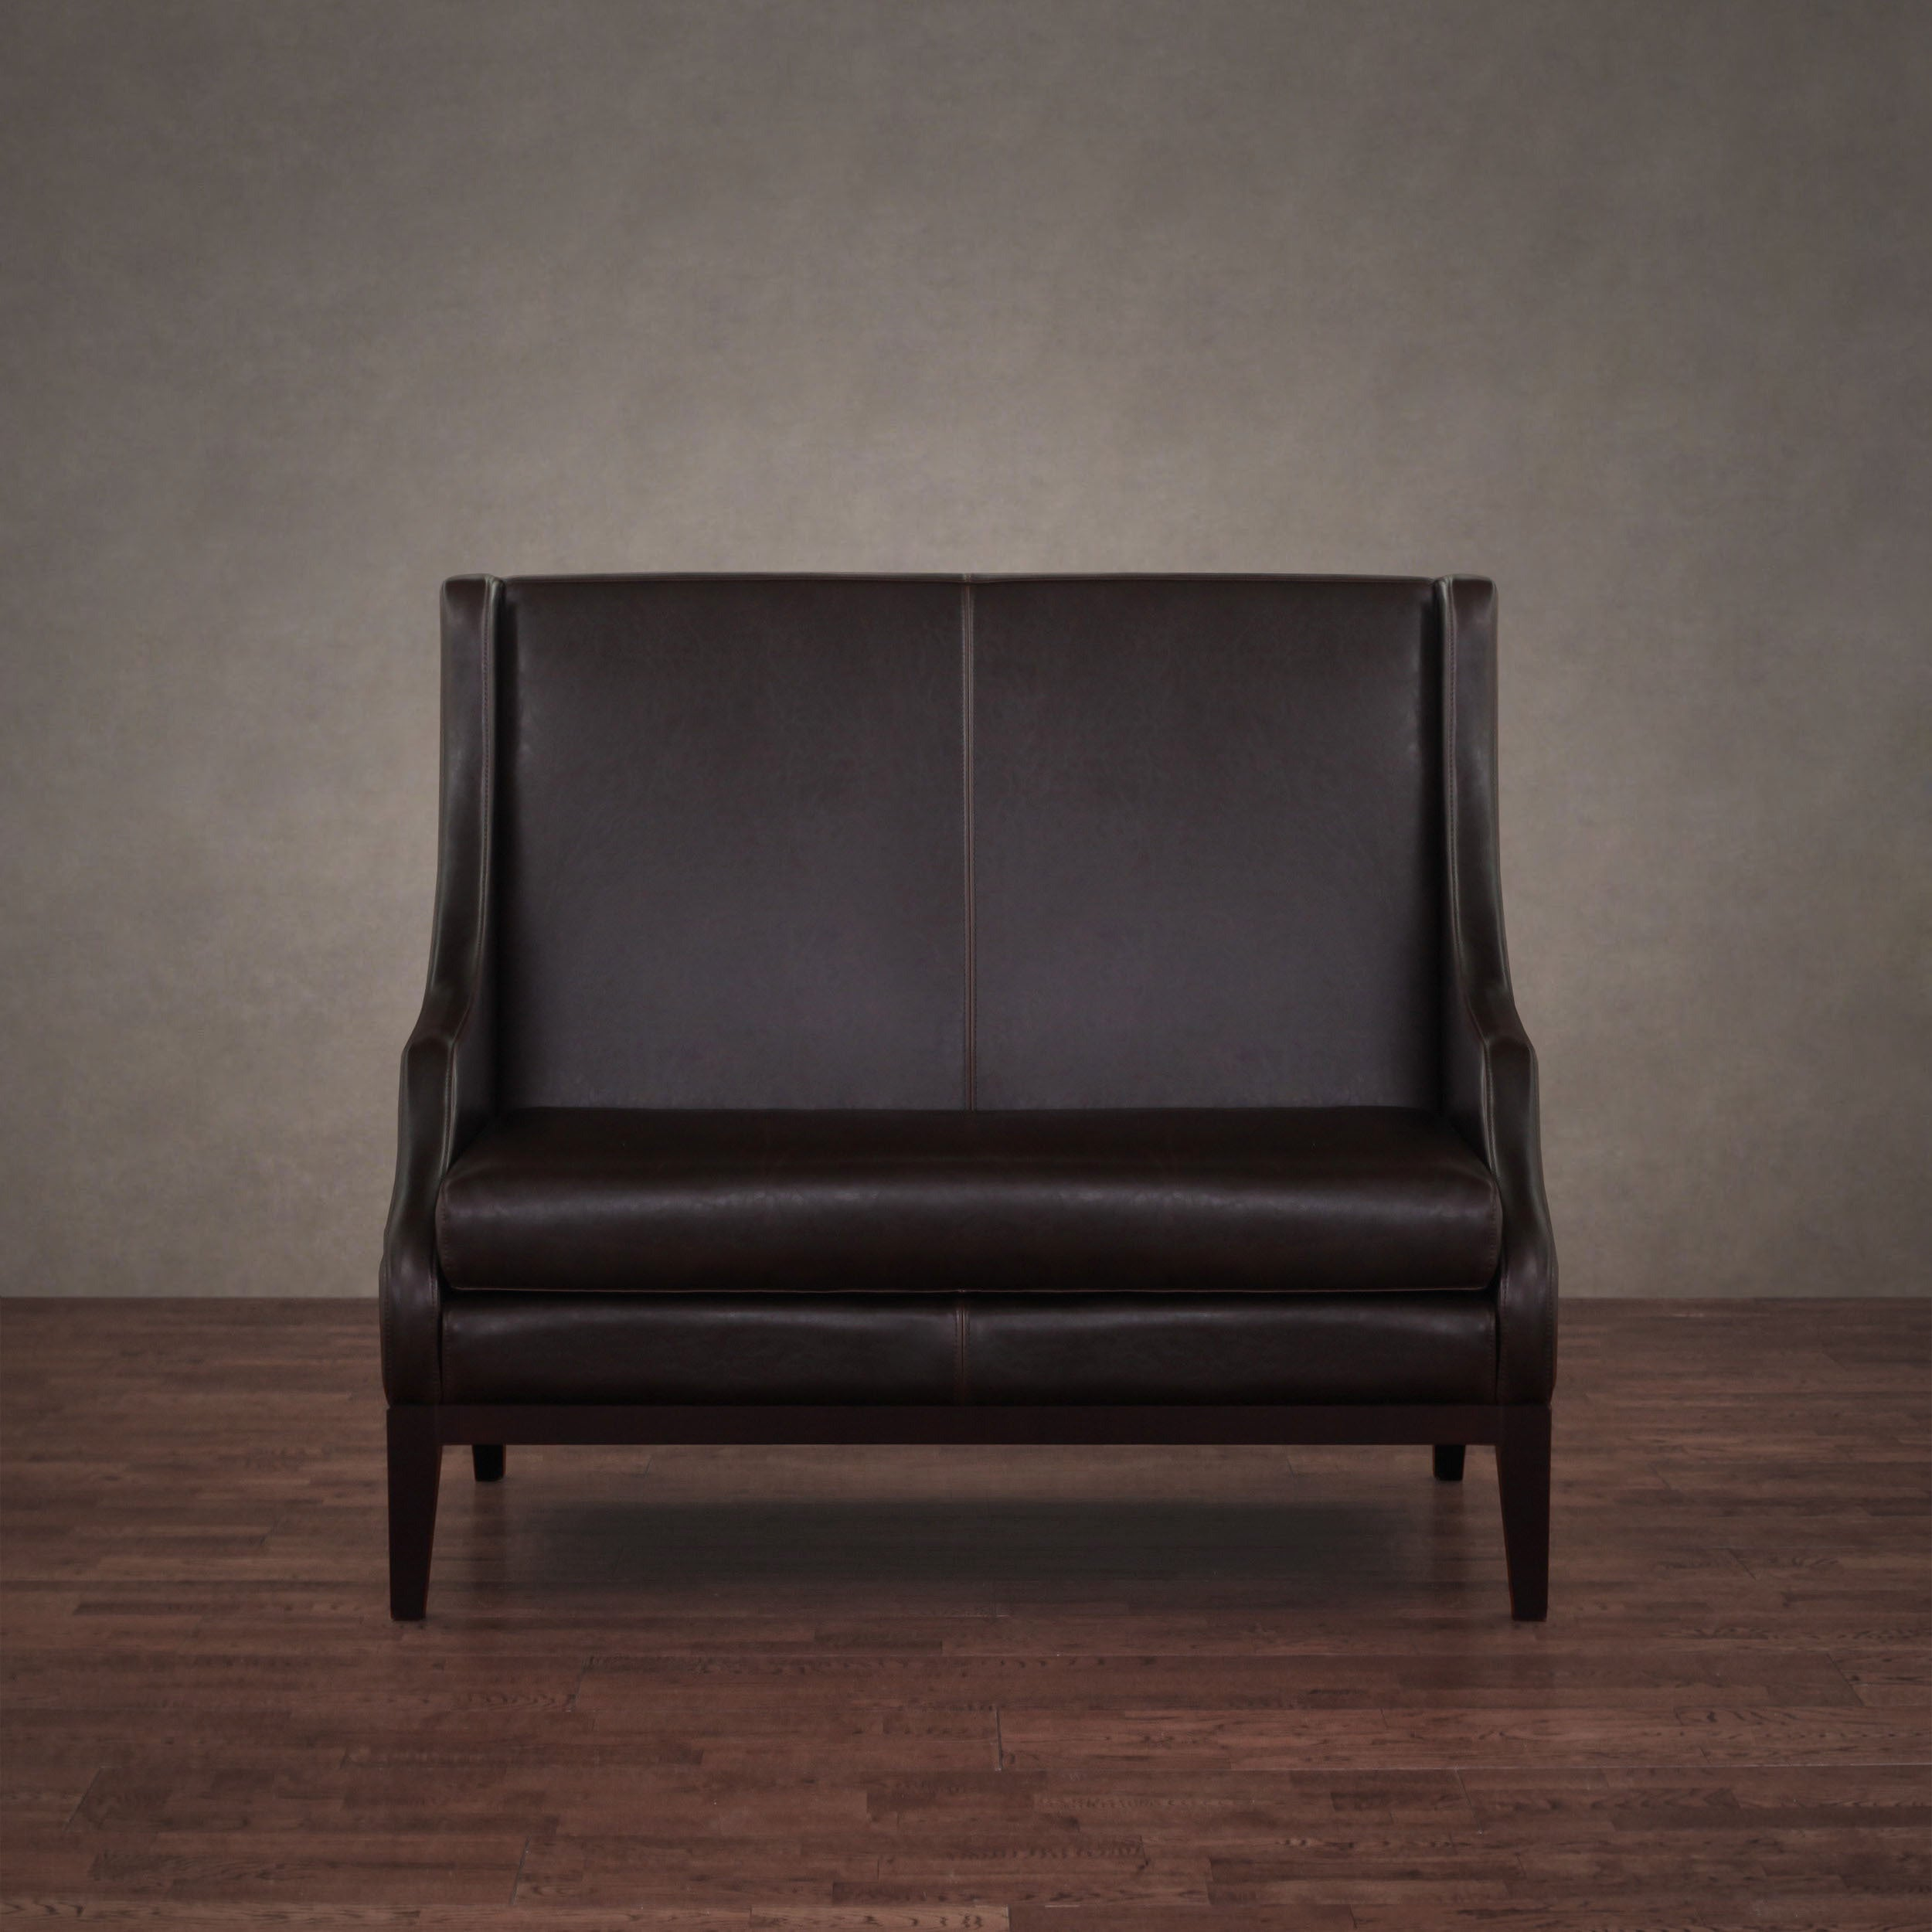 loveseat sofas collections couches designs ltgy scandinavian luxury petite modern recliner leather